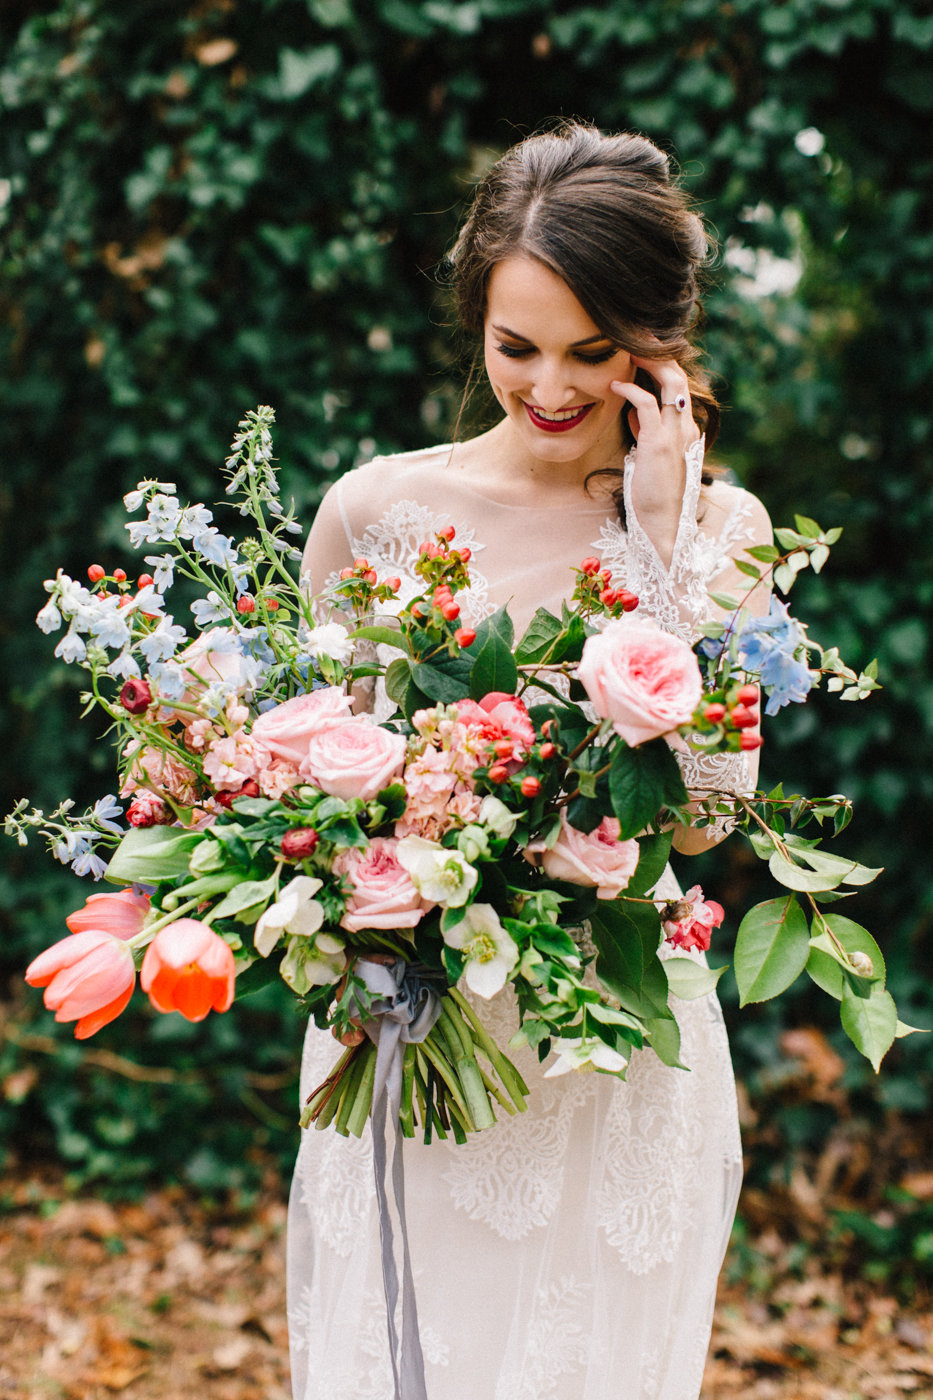 lush garden wedding bouquets - photo by 4 Corners Photography http://ruffledblog.com/backyard-elopement-inspiration-for-valentines-day